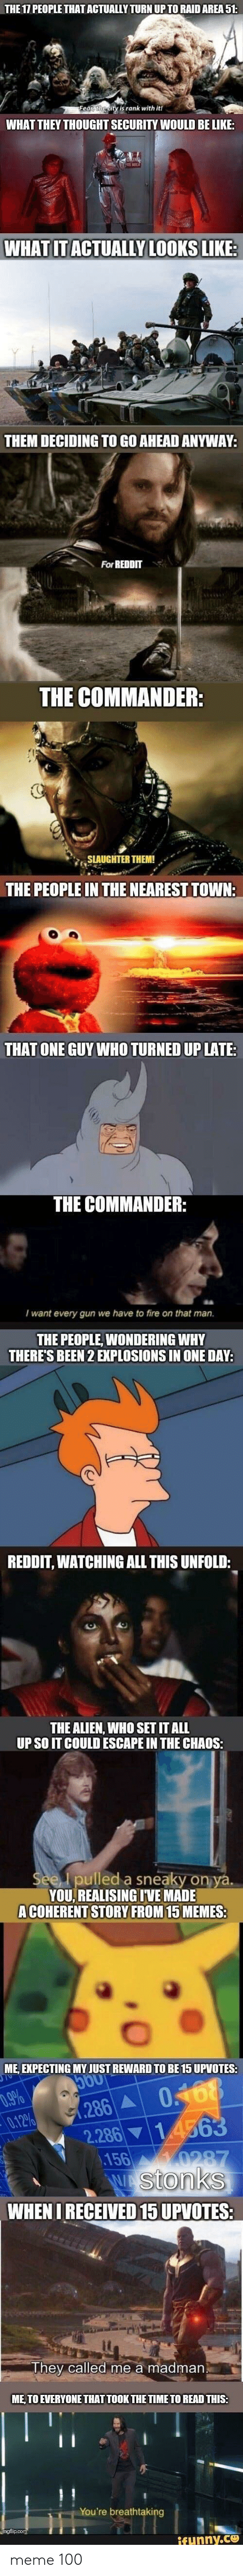 Be Like, Fire, and Meme: THE 17 PEOPLE THAT ACTUALLY TURN UP TO RAID AREA 51:  Fear the city is rank with it!  WHAT THEY THOUGHT SECURITY WOULD BE LIKE:  WHAT IT ACTUALLY LOOKS LIKE:  THEM DECIDING TO GO AHEAD ANYWAY:  For REDDIT  THE COMMANDER:  SLAUGHTER THEM!  THE PEOPLE IN THE NEAREST TOWN:  THAT ONE GUY WHO TURNED UP LATE:  THE COMMANDER:  I want every gun we have to fire on that man.  THE PEOPLE, WONDERING WHY  THERE'S BEEN 2 EXPLOSIONS IN ONE DAY:  REDDIT, WATCHING ALL THIS UNFOLD:  THE ALIEN, WHO SET IT ALL  UP SO IT COULD ESCAPE IN THE CHAOS:  See, I pulled a sneaky on ya.  YOU, REALISING IVE MADE  A COHERENT STORY FROM 15 MEMES:  ME, EXPECTING MY JUST REWARD TO BE 15 UPVOTES:  5O0  0.9%  0.12%  0.168  1.286 A  2.286 14563  156  0287  Wstonks  WHEN I RECEIVED 15 UPVOTES:  They called me a madman.  ME, TO EVERYONE THAT TOOK THE TIME TO READ THIS:  You're breathtaking  umgflip.com  ifunny.co meme 100